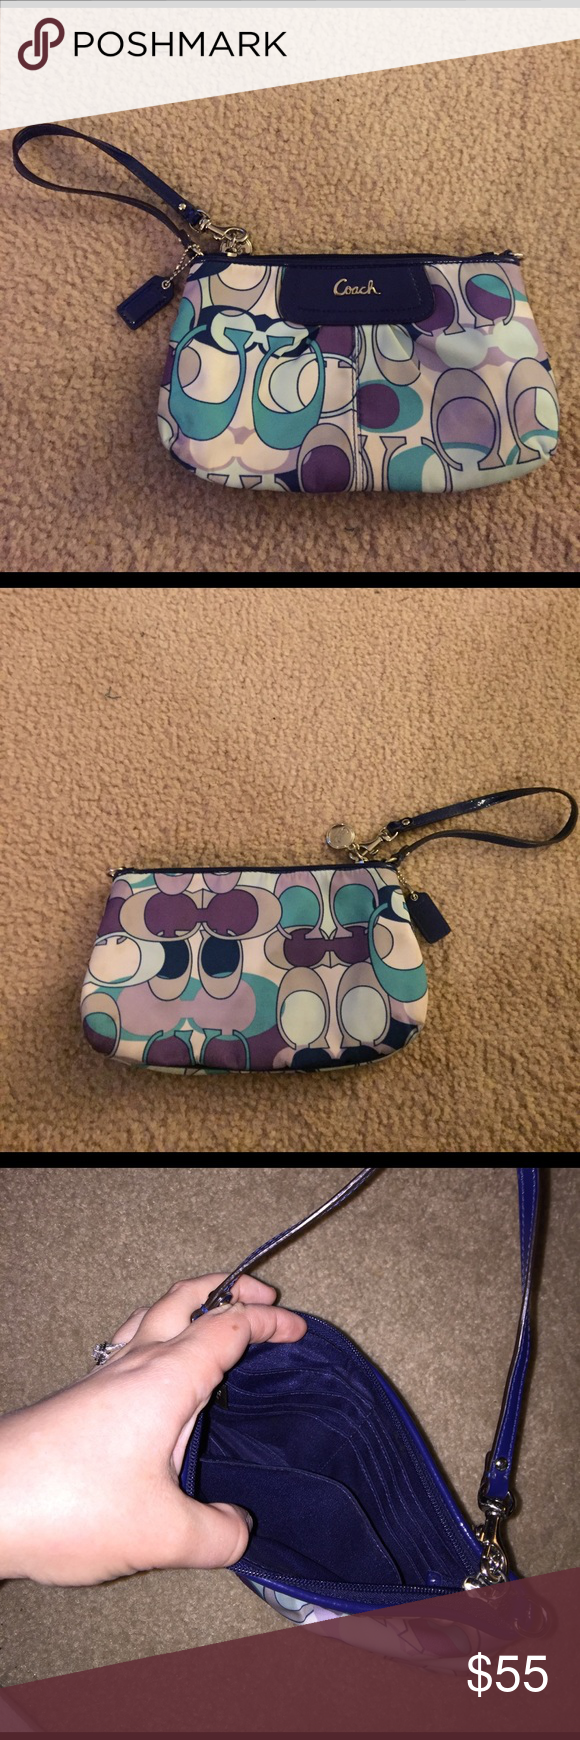 Authentic large Coach wristlet ! Large wristlet from coach in great condition. Inside pocket has 8 card slots and another pocket on the opposite side from the card slots. Zipper is in perfect condition. May have minor stains from minimal use, but not noticeable at all. Accepting offers Coach Bags Clutches & Wristlets